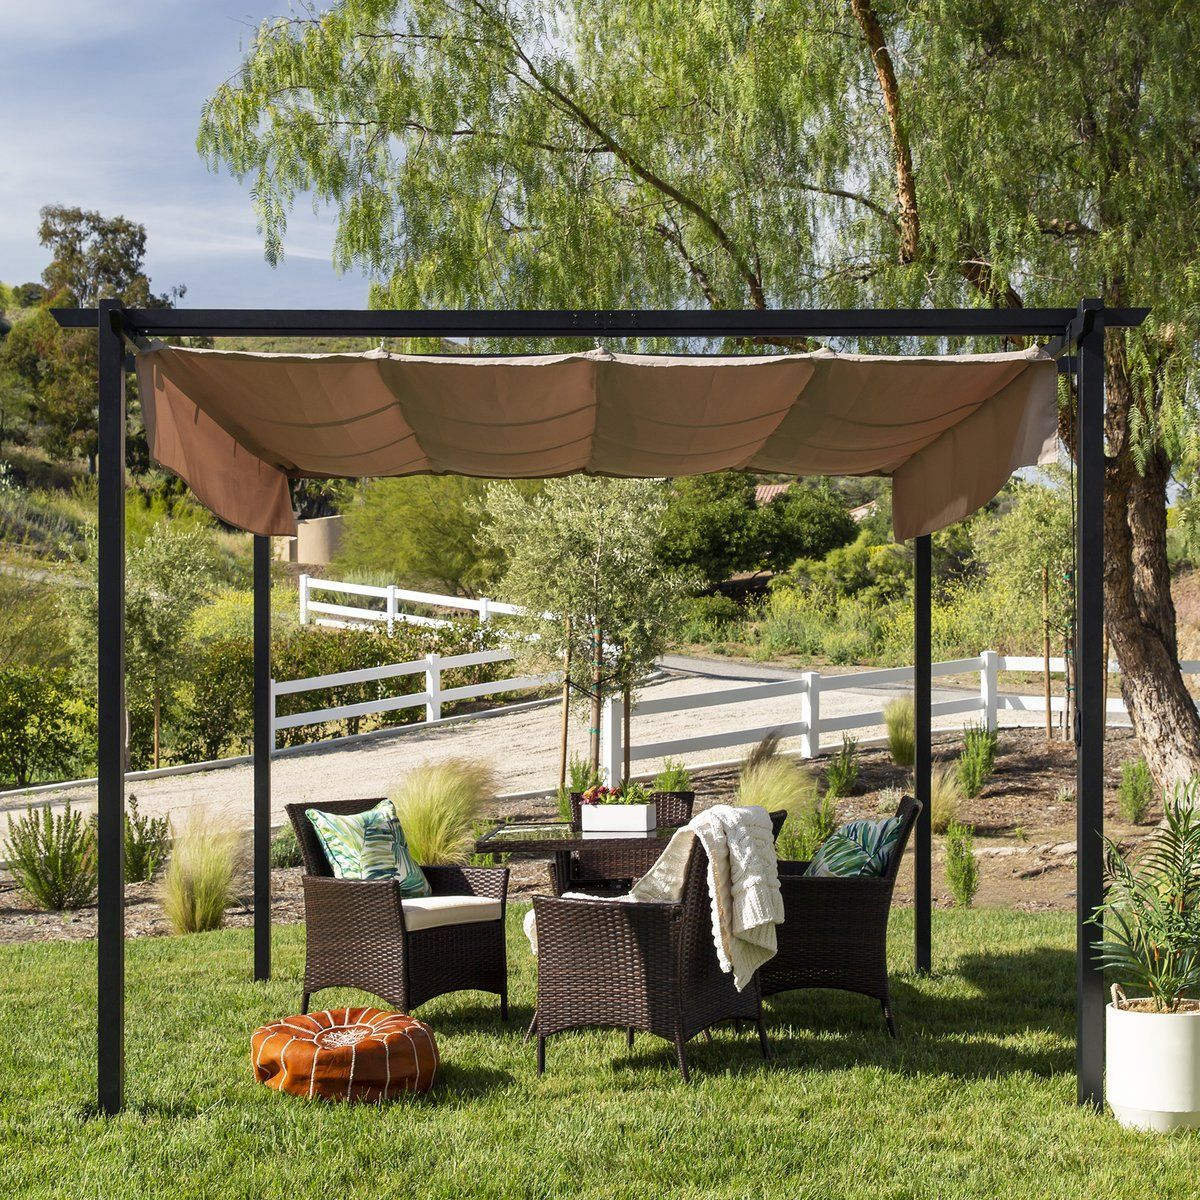 10x10 Ft Outdoor Pergola With Retractable Weatherproof Awning Steel Frame 10x10 Ft Outdoor In 2020 Backyard Shade Patio Weather Pergola Shade